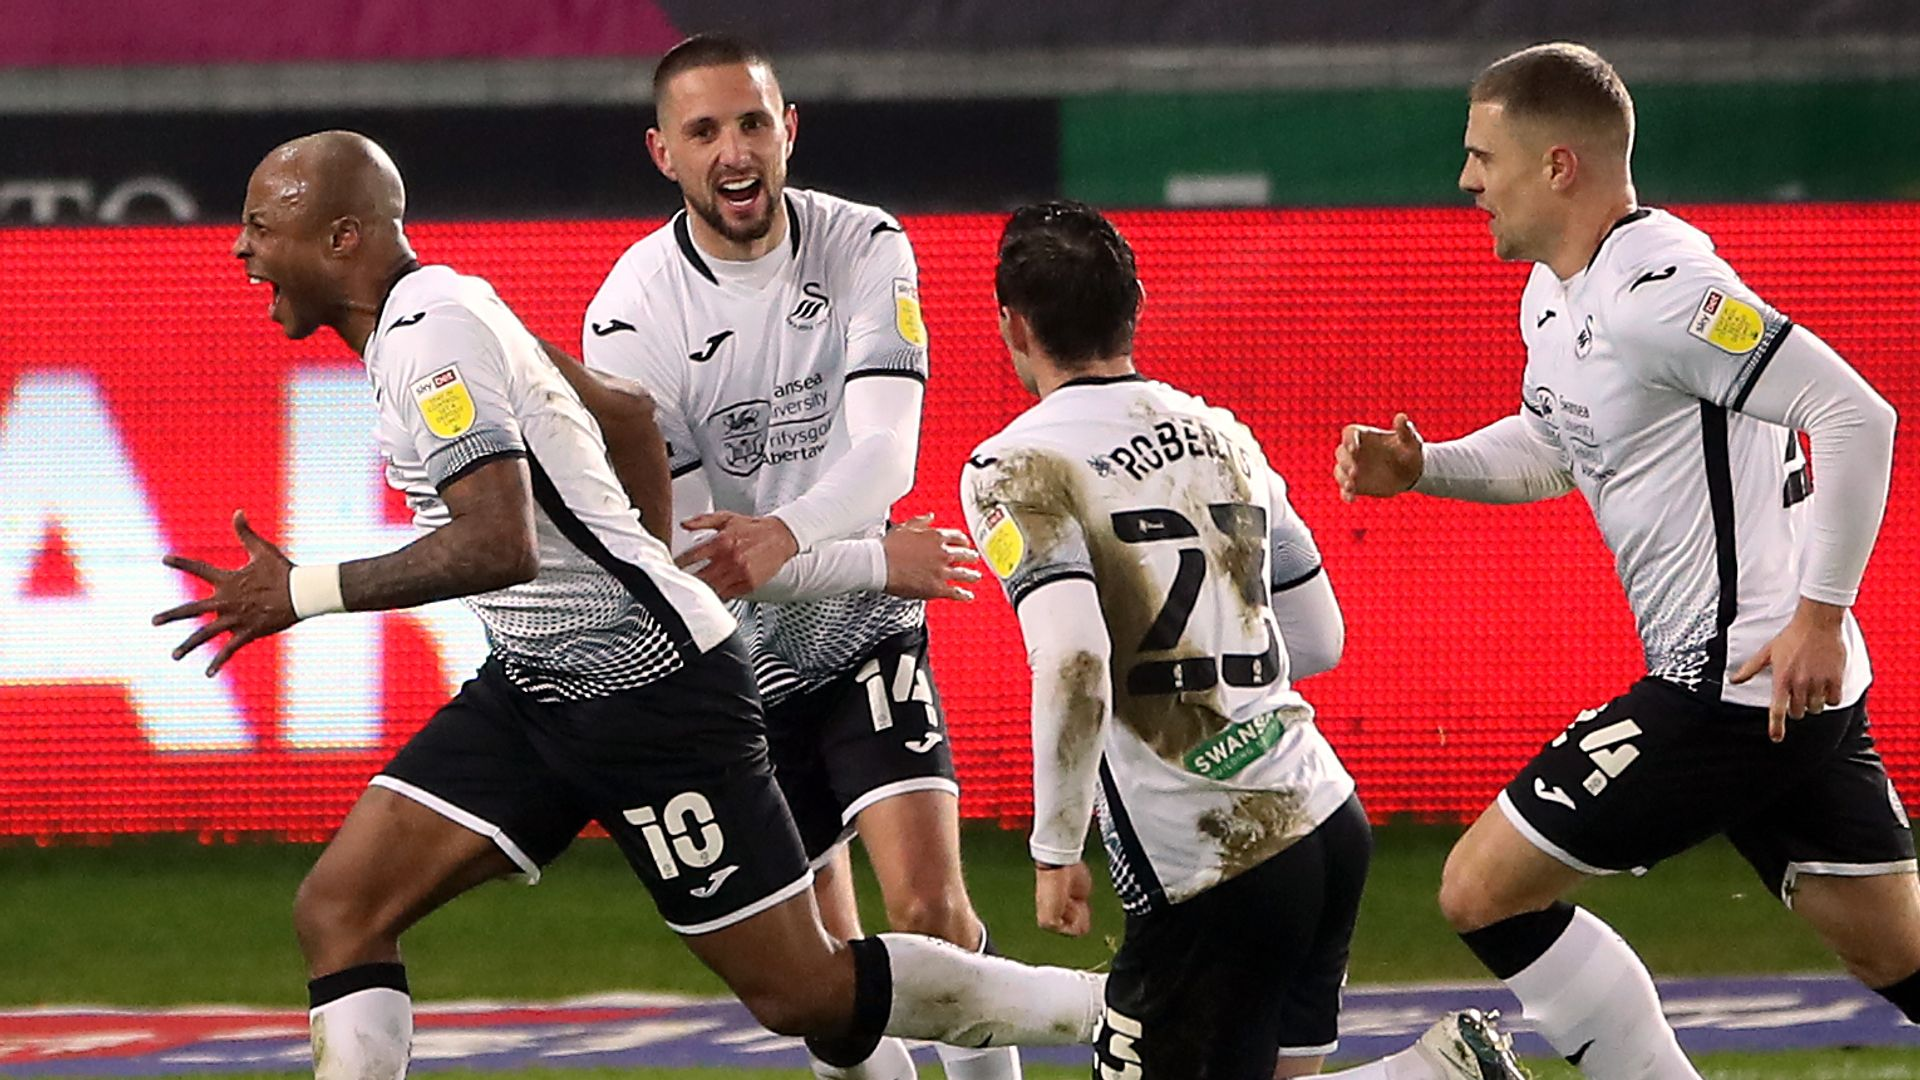 Swansea beat Norwich to move two points behind leaders